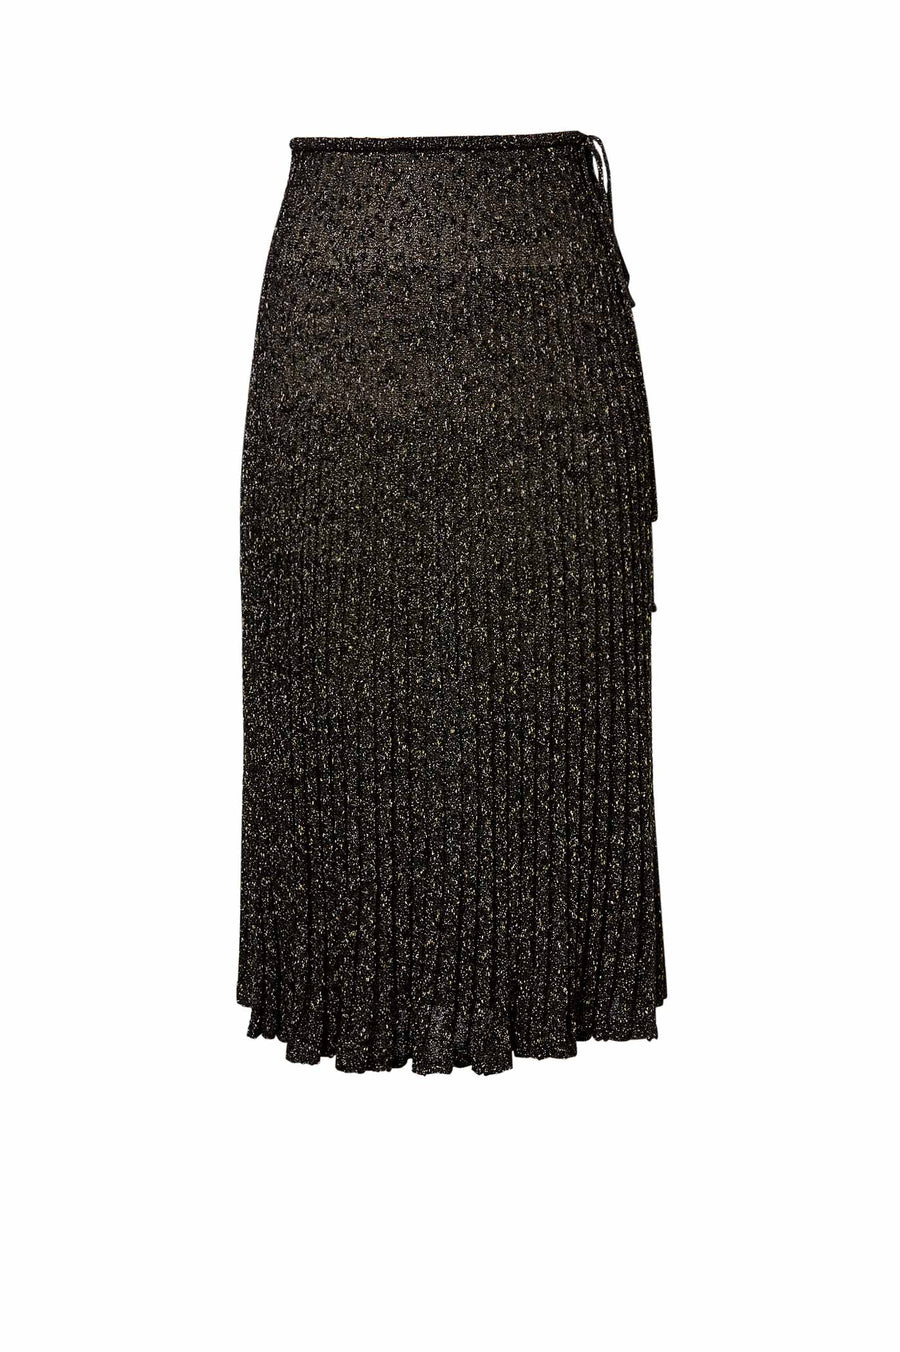 Calypso Tinsel Skirt 7 Black